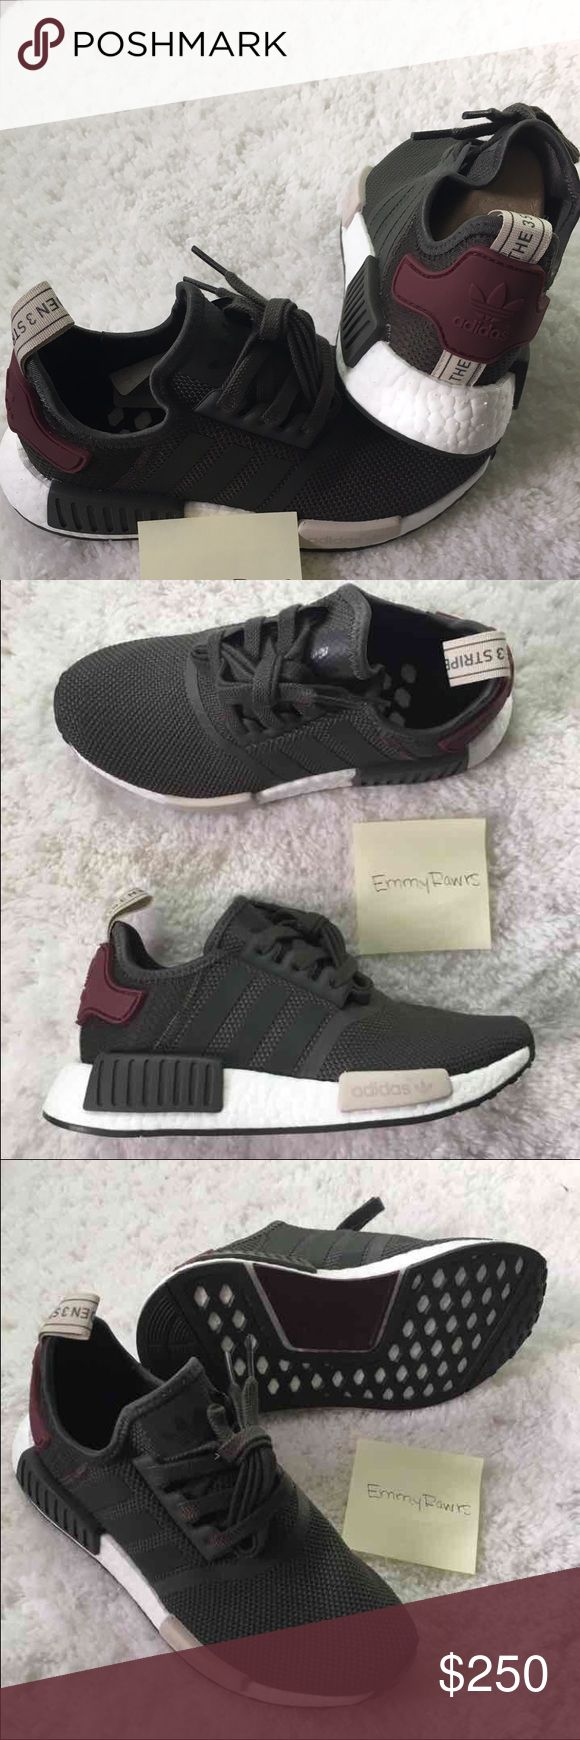 $200 New Adidas NMD R1 •• $200 on either Vinted or P ••• New Women Adidas NMD. Featherweight sneakers with the adidas boost cushioning. Upper is made of suede and neoprene which makes these. reflective. Also have EVA foam plugs which provides more comfort for the underfoot. Have the classic 3 stripes. Colorway: Utility Grey. More of an olive green. Stripes are green reflective!  Size 5.5, 6, and 8.5 in women's are available.   #adidas #NMD #boost #women #yeezy #superstar #stan smith Adidas…